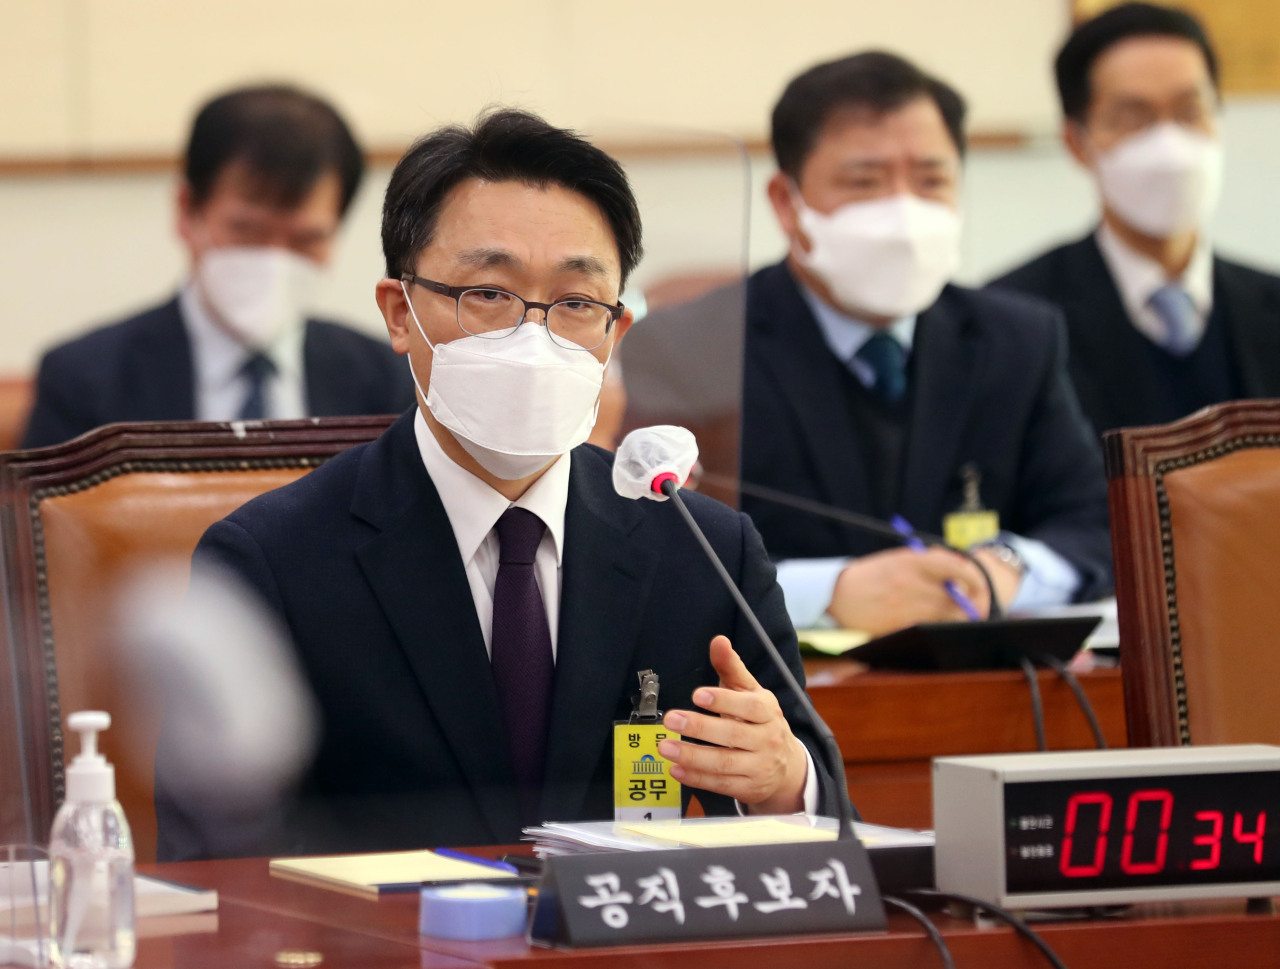 Kim Jin-wook, nominee for the inaugural chief of the Corruption Investigation Office for High-ranking Officials, speaks during his confirmation hearing Tuesday held at the National Assembly.